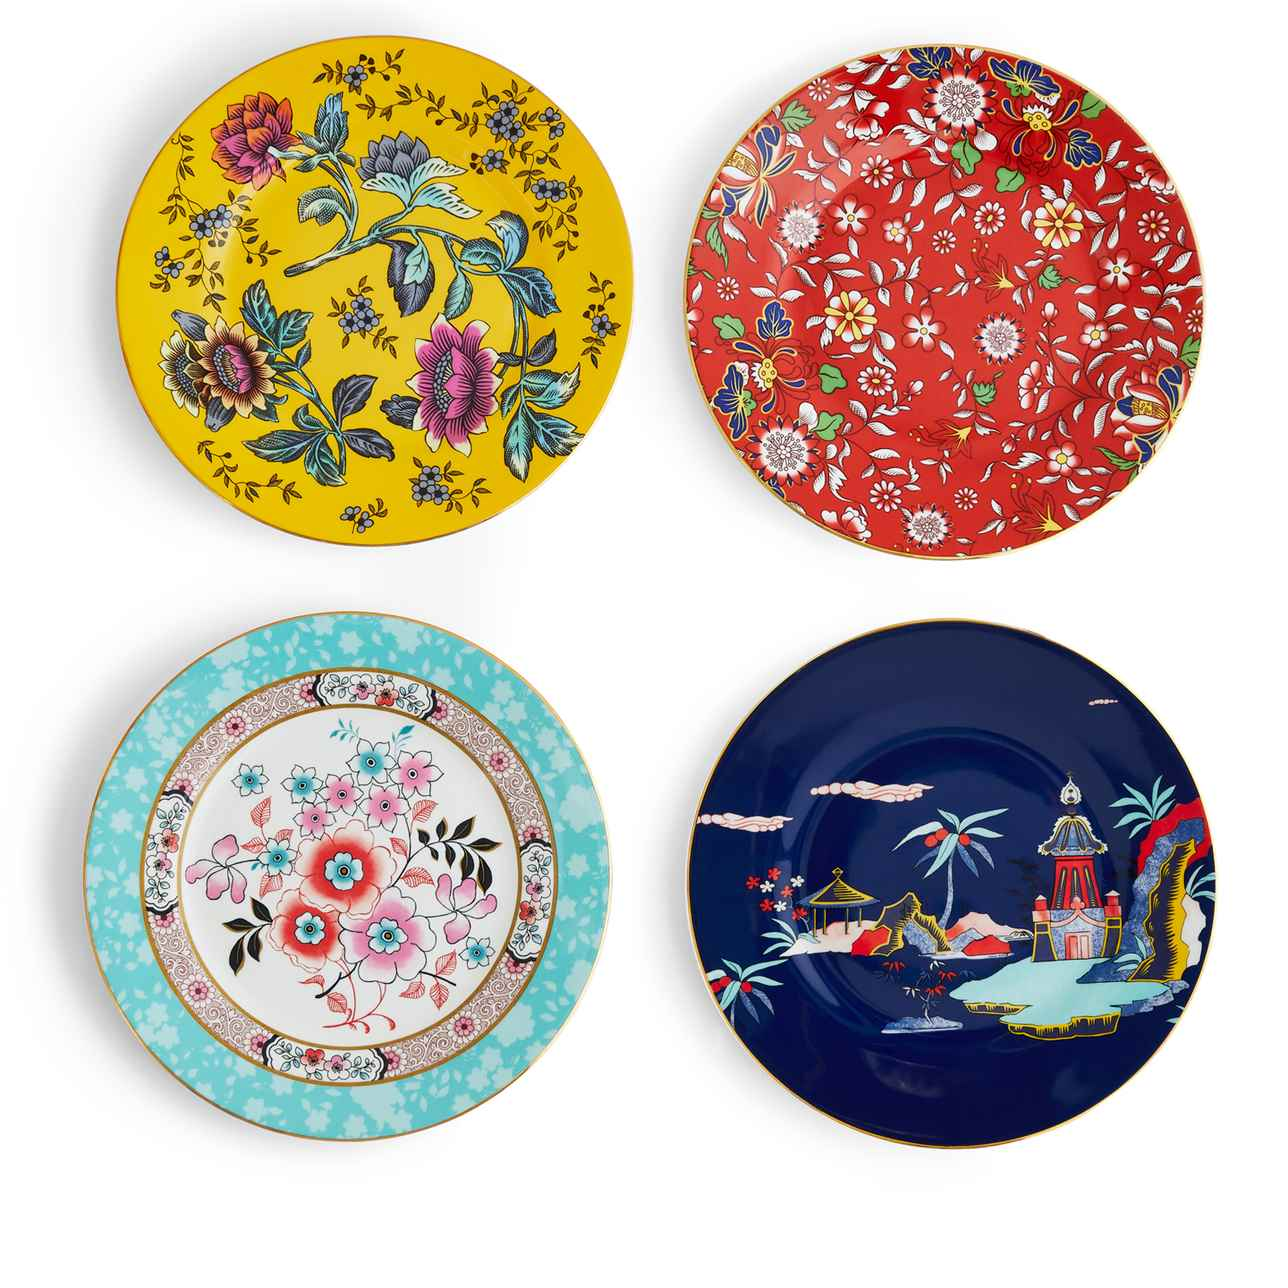 Wonderlust Plates, Set of 4